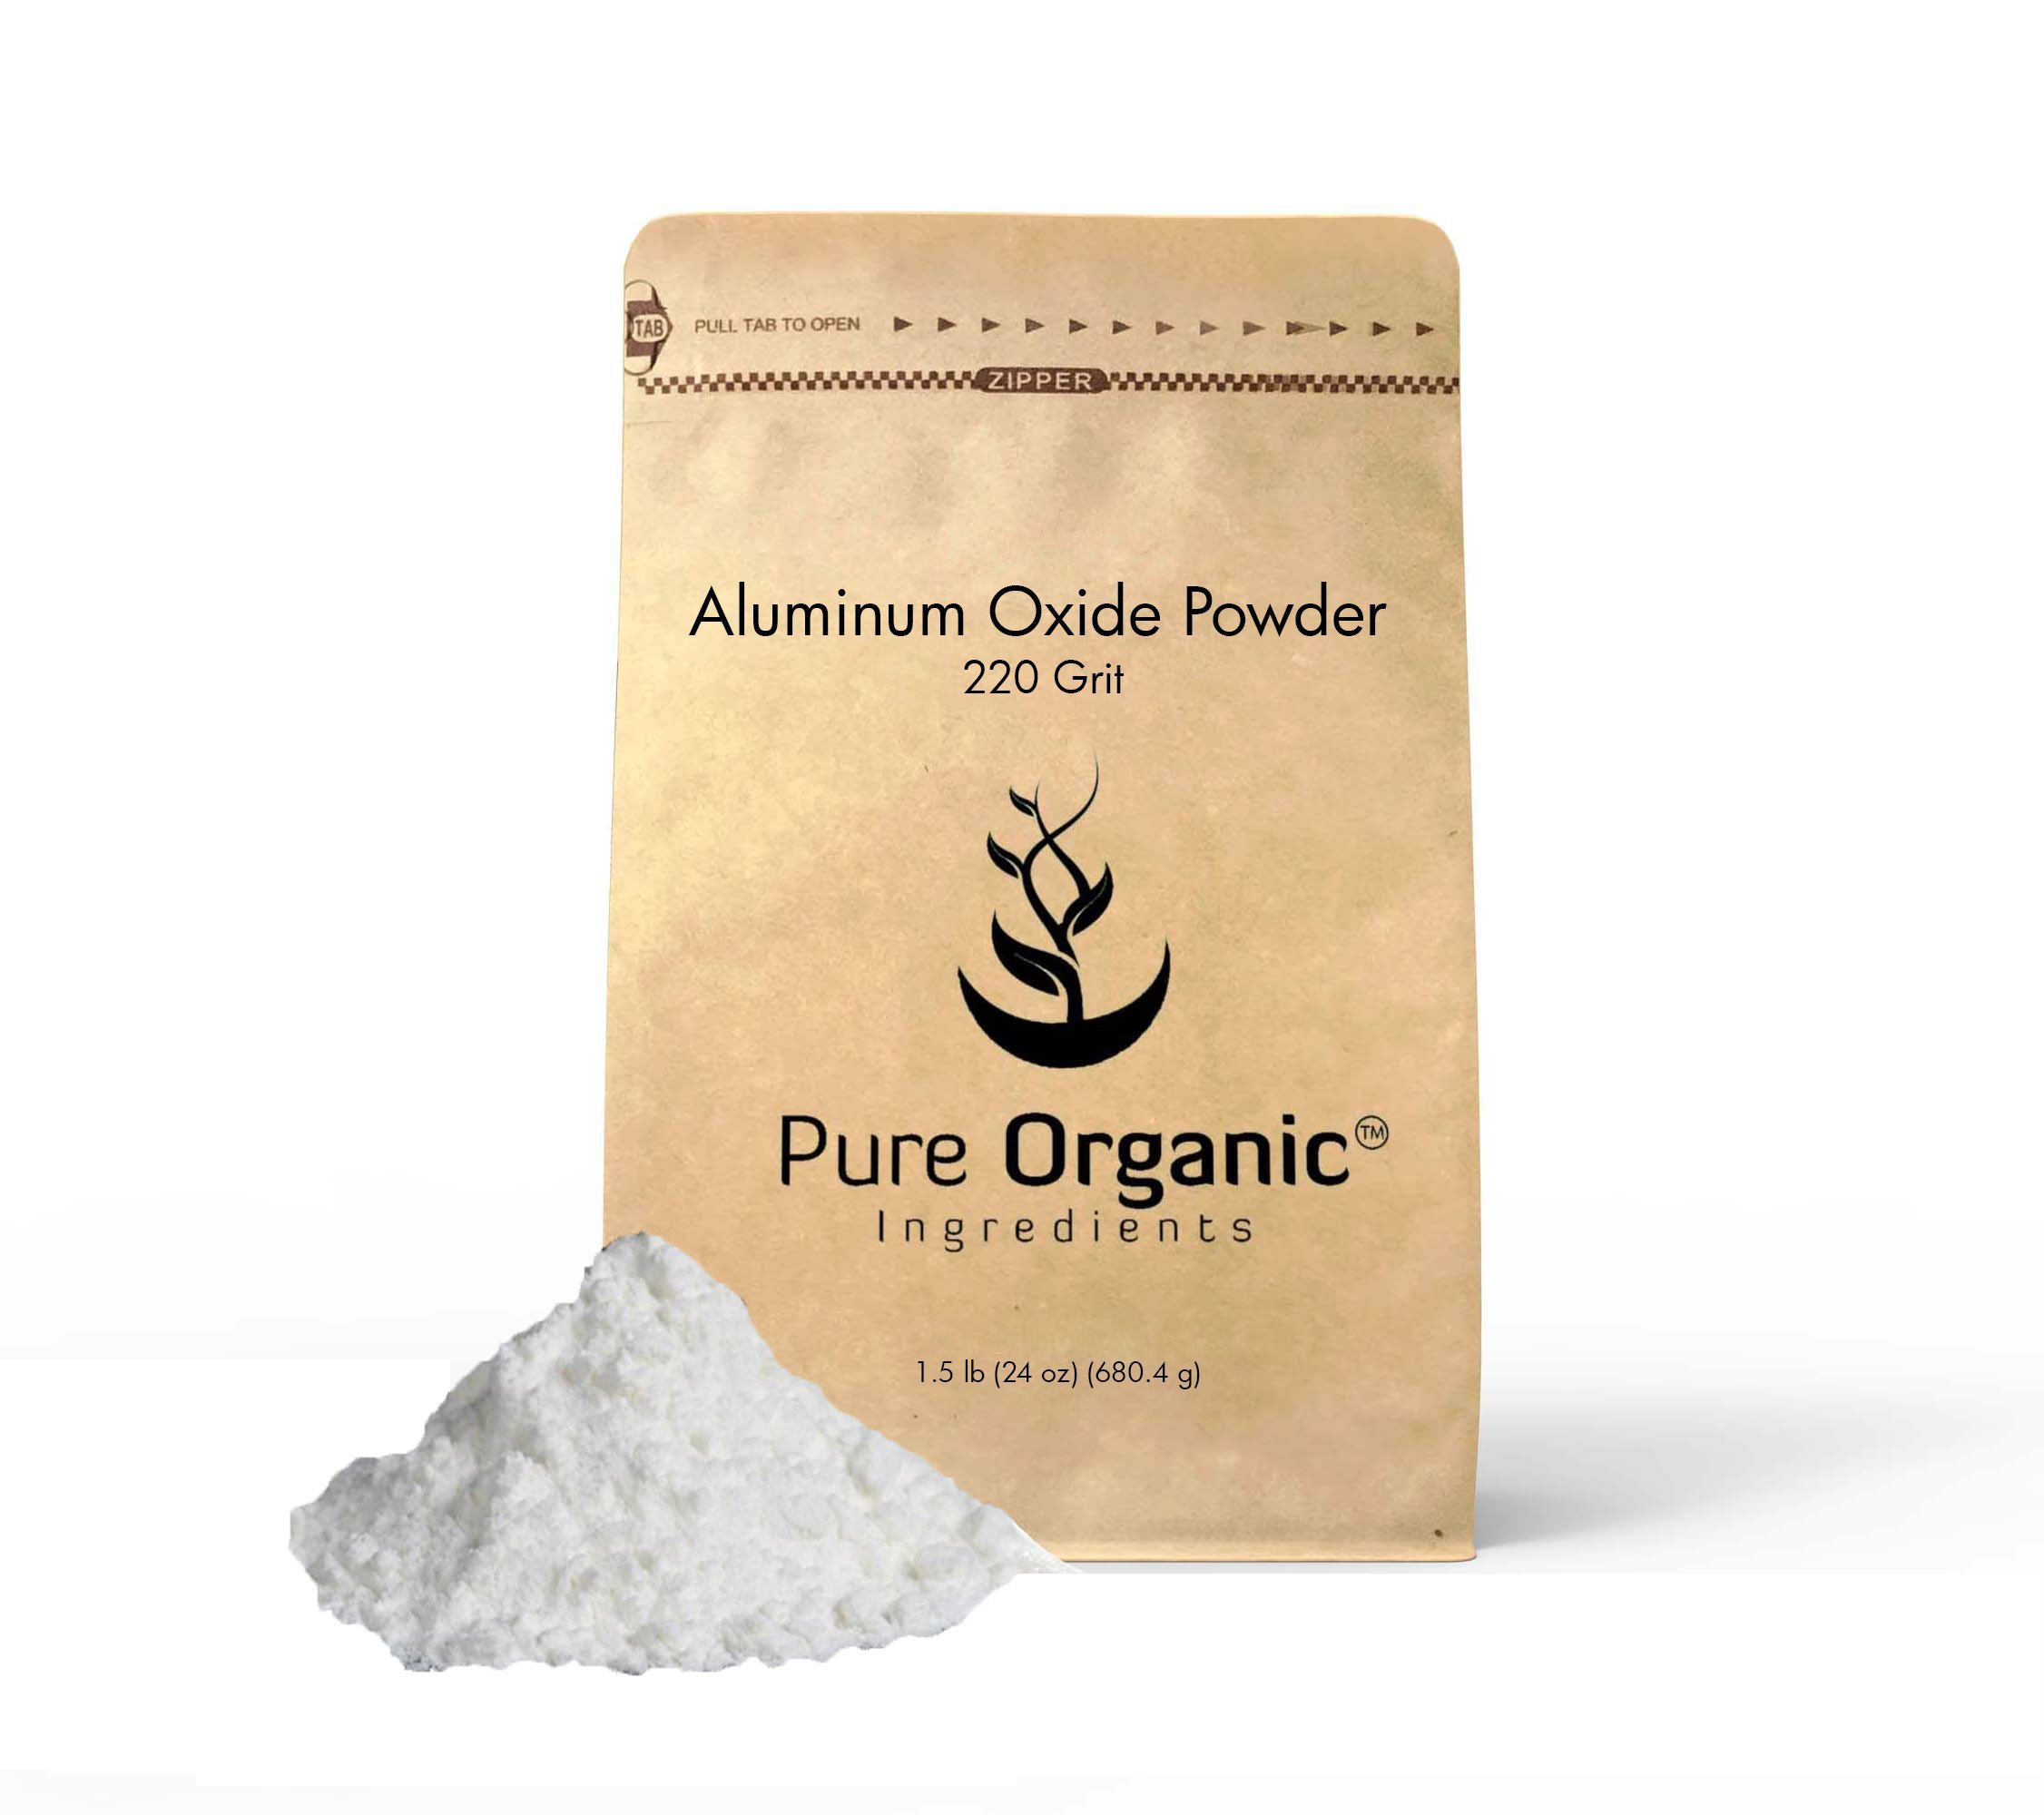 Aluminum Oxide (2 lb (32 oz)) fine powder 220 Grit for Glass etching, Eco-Friendly Packaging (also available in 8 oz)